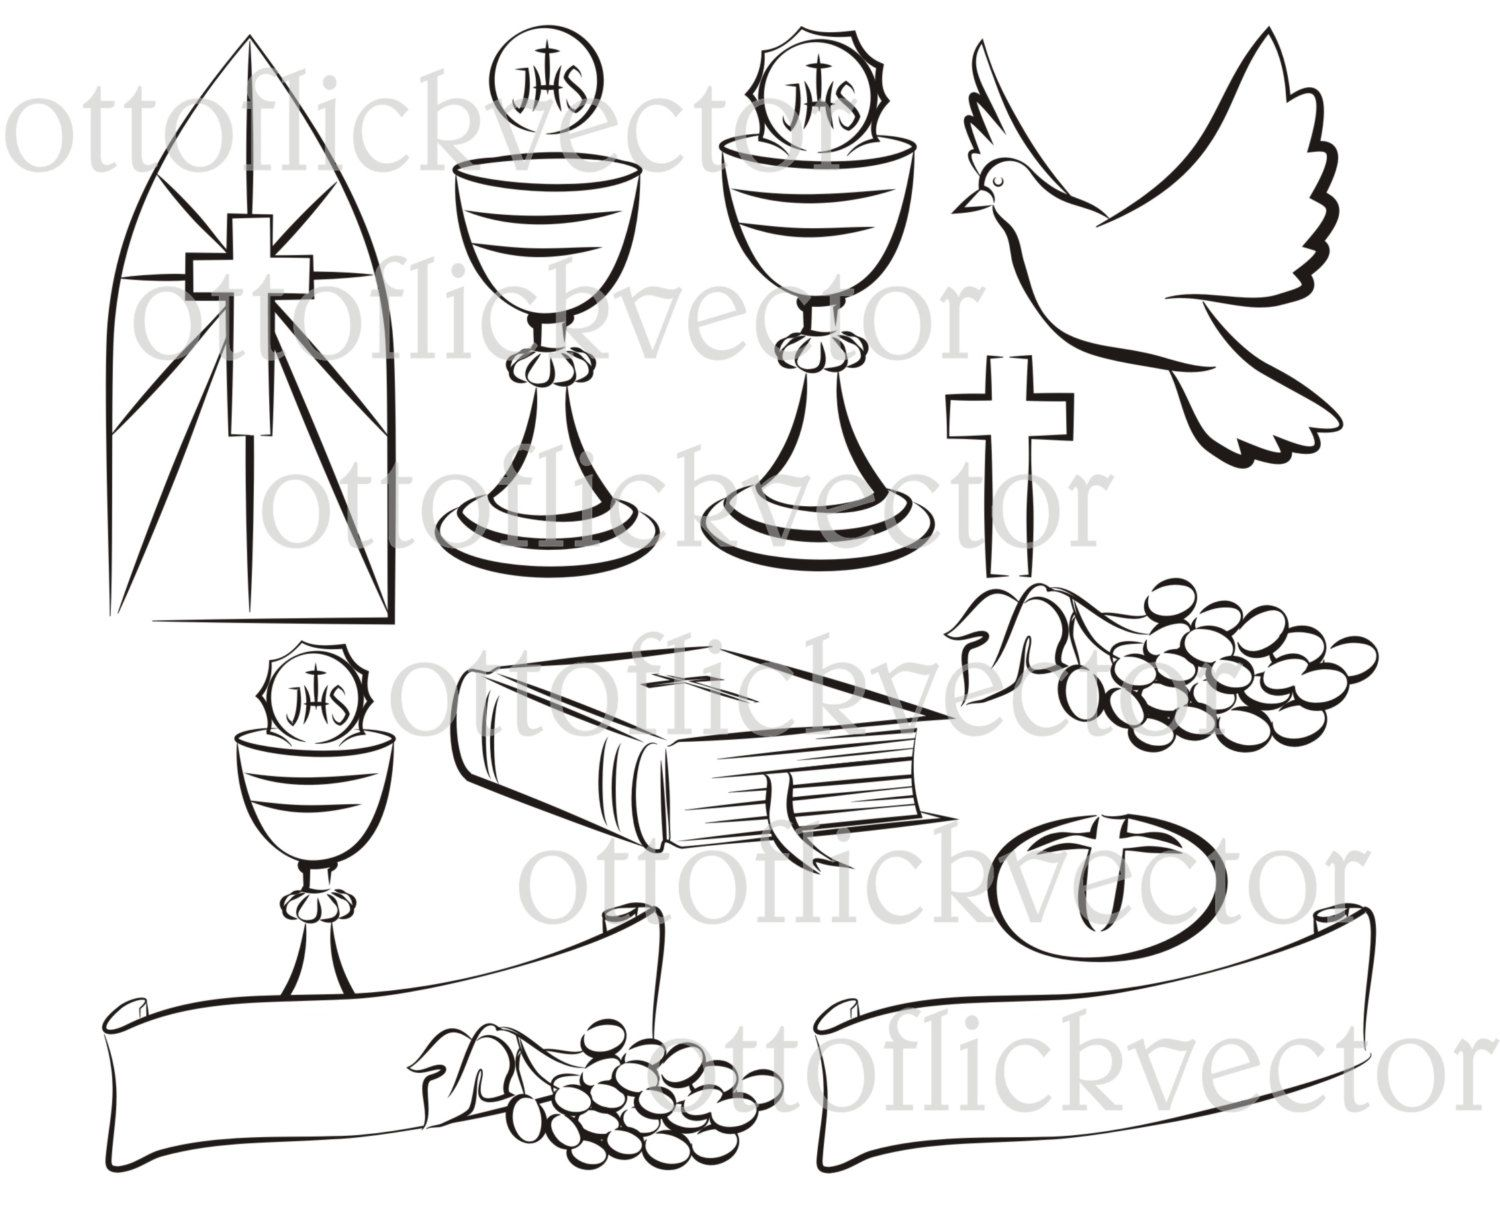 medium resolution of vector clipart for printing designing your own project and more you will receive zip file